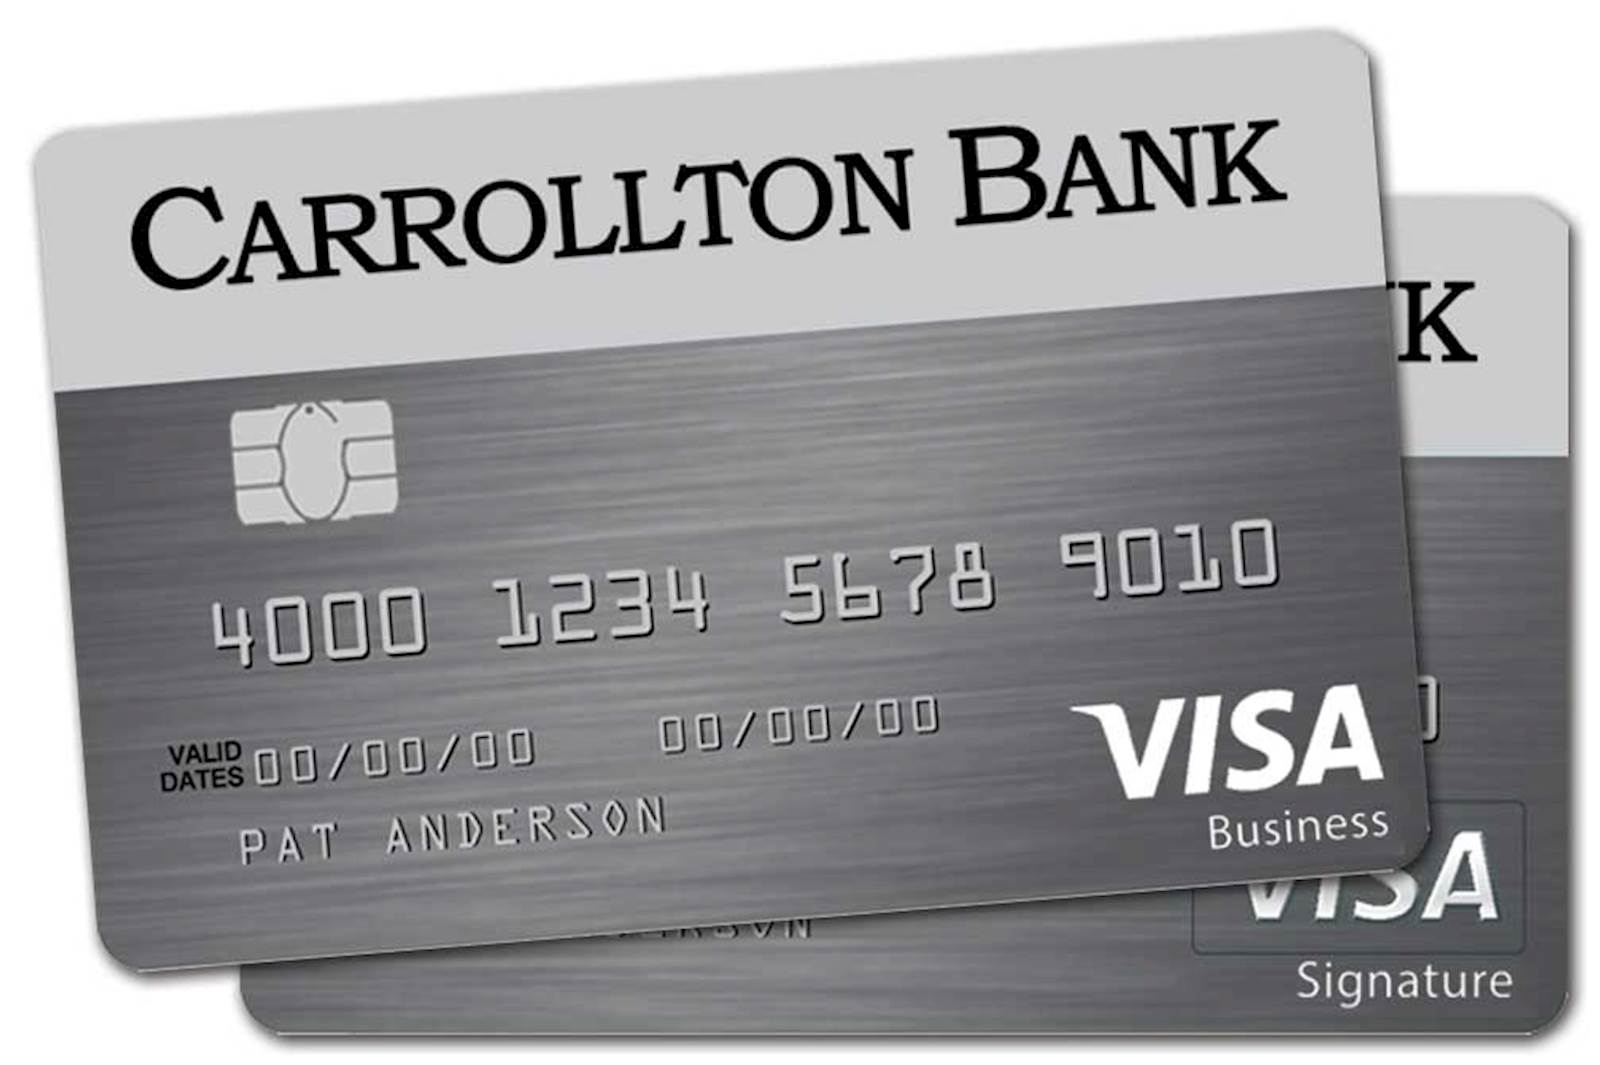 Credit Card Services From Carrollton Bank